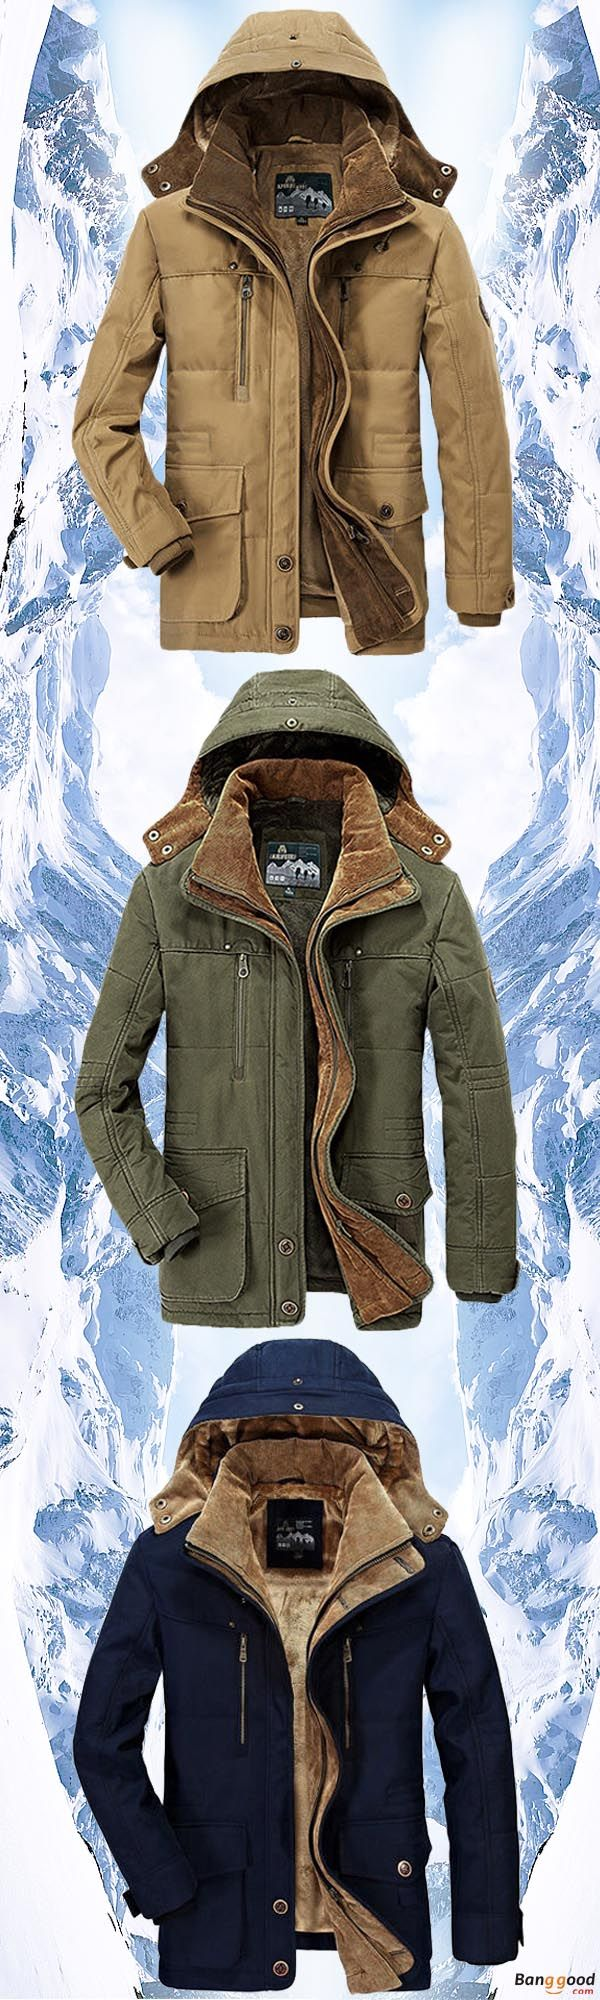 US$99.99 + Free Shipping. LAST 2 Week Promotion. Mens Coat, Thick Coat, Fleece Winter Coat, Hooded Coat, Outdoor Coat, Solid Color Jacket. Color: Blue, Coffee, Army Green, Khaki. Dress Up, Winter is Coming!